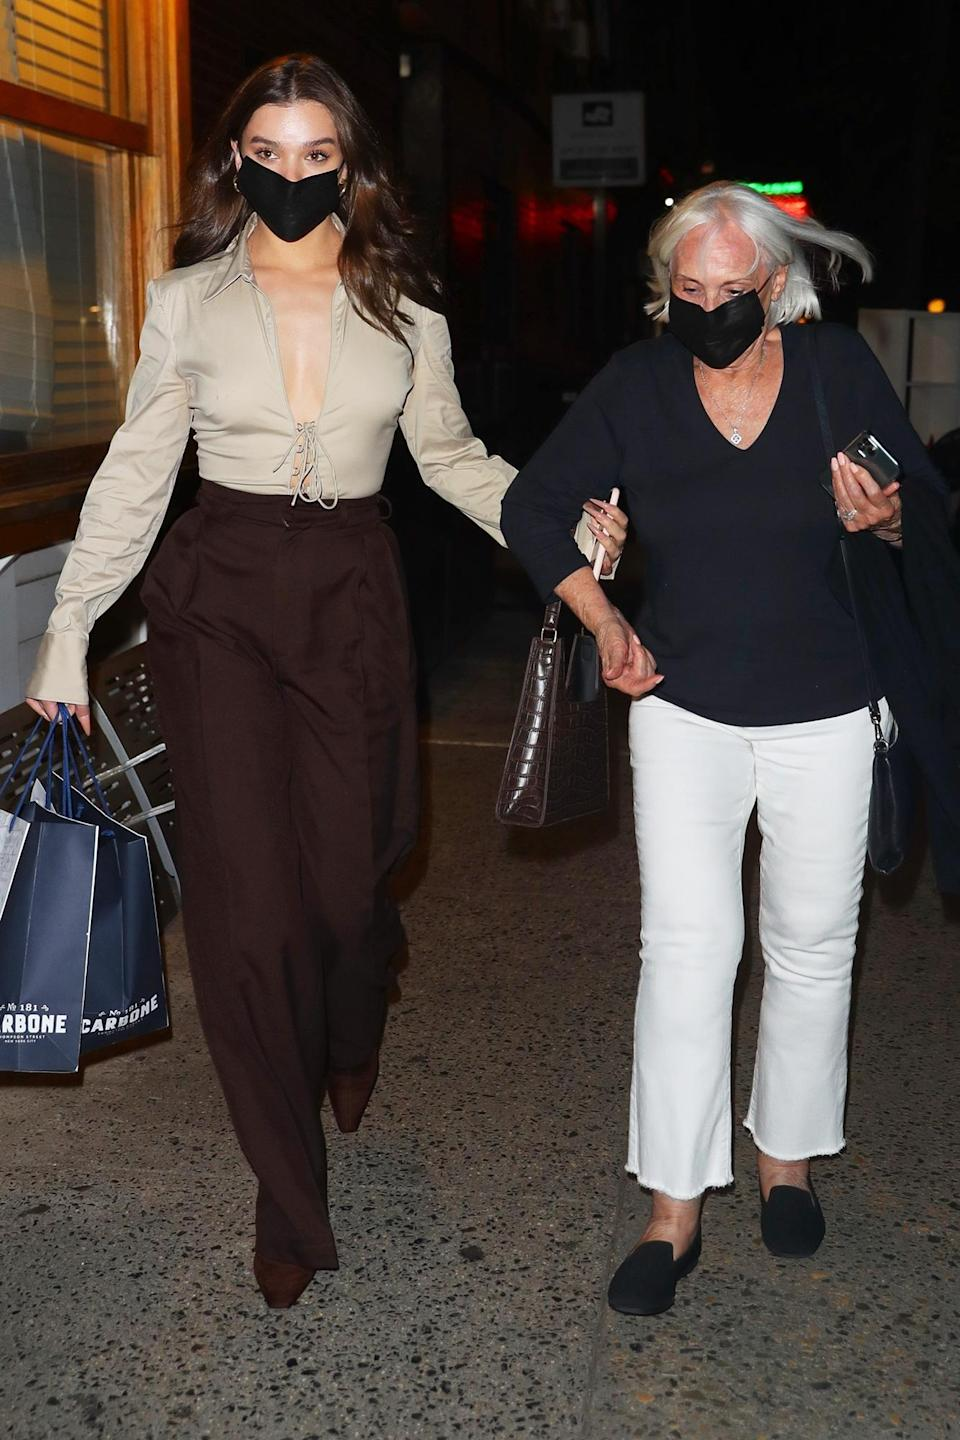 <p>Hailee Steinfeld walks arm-in-arm with her grandmother after grabbing dinner together at Carbone in N.Y.C. on Sept. 14. </p>